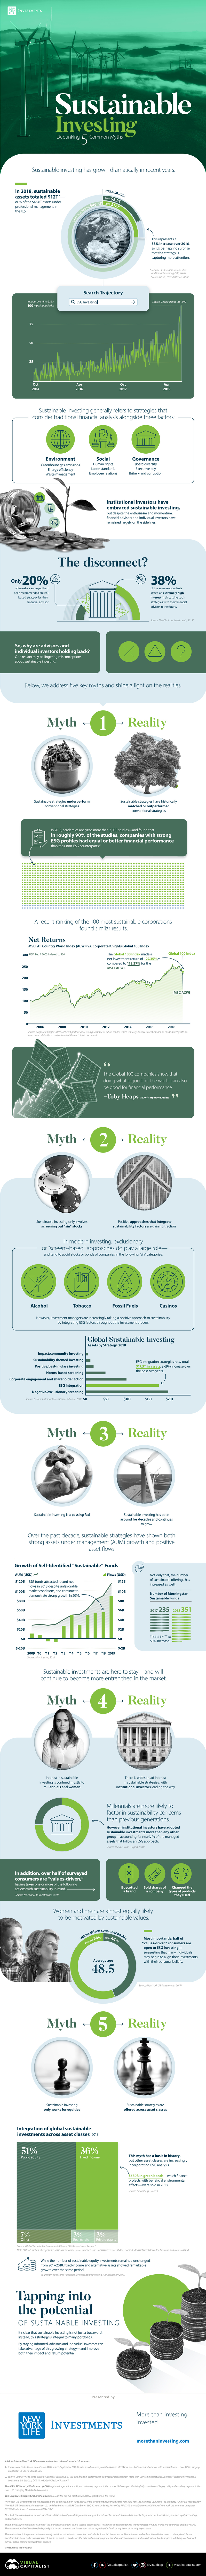 Sustainable Investing: Debunking 5 Common Myths